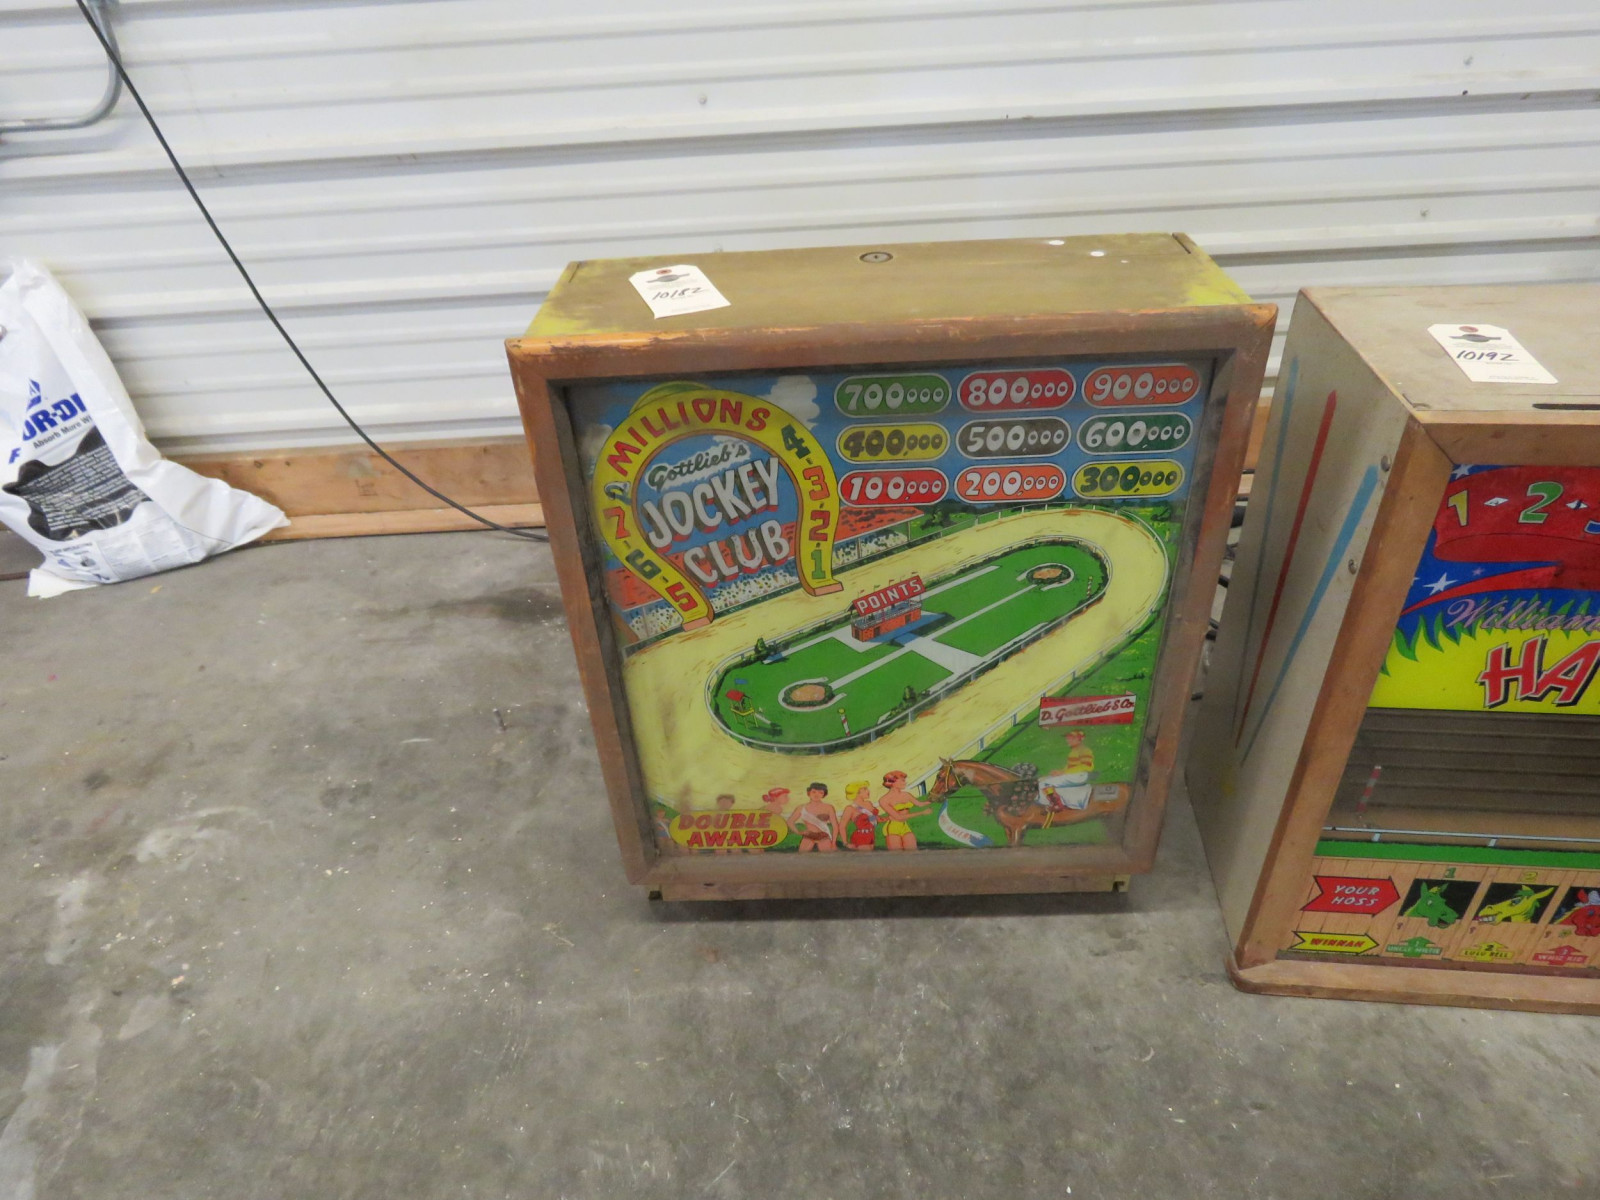 Vintage Top Pinball Machine by D. Gottieb & Comp. Chicago, Ill. - Image 1